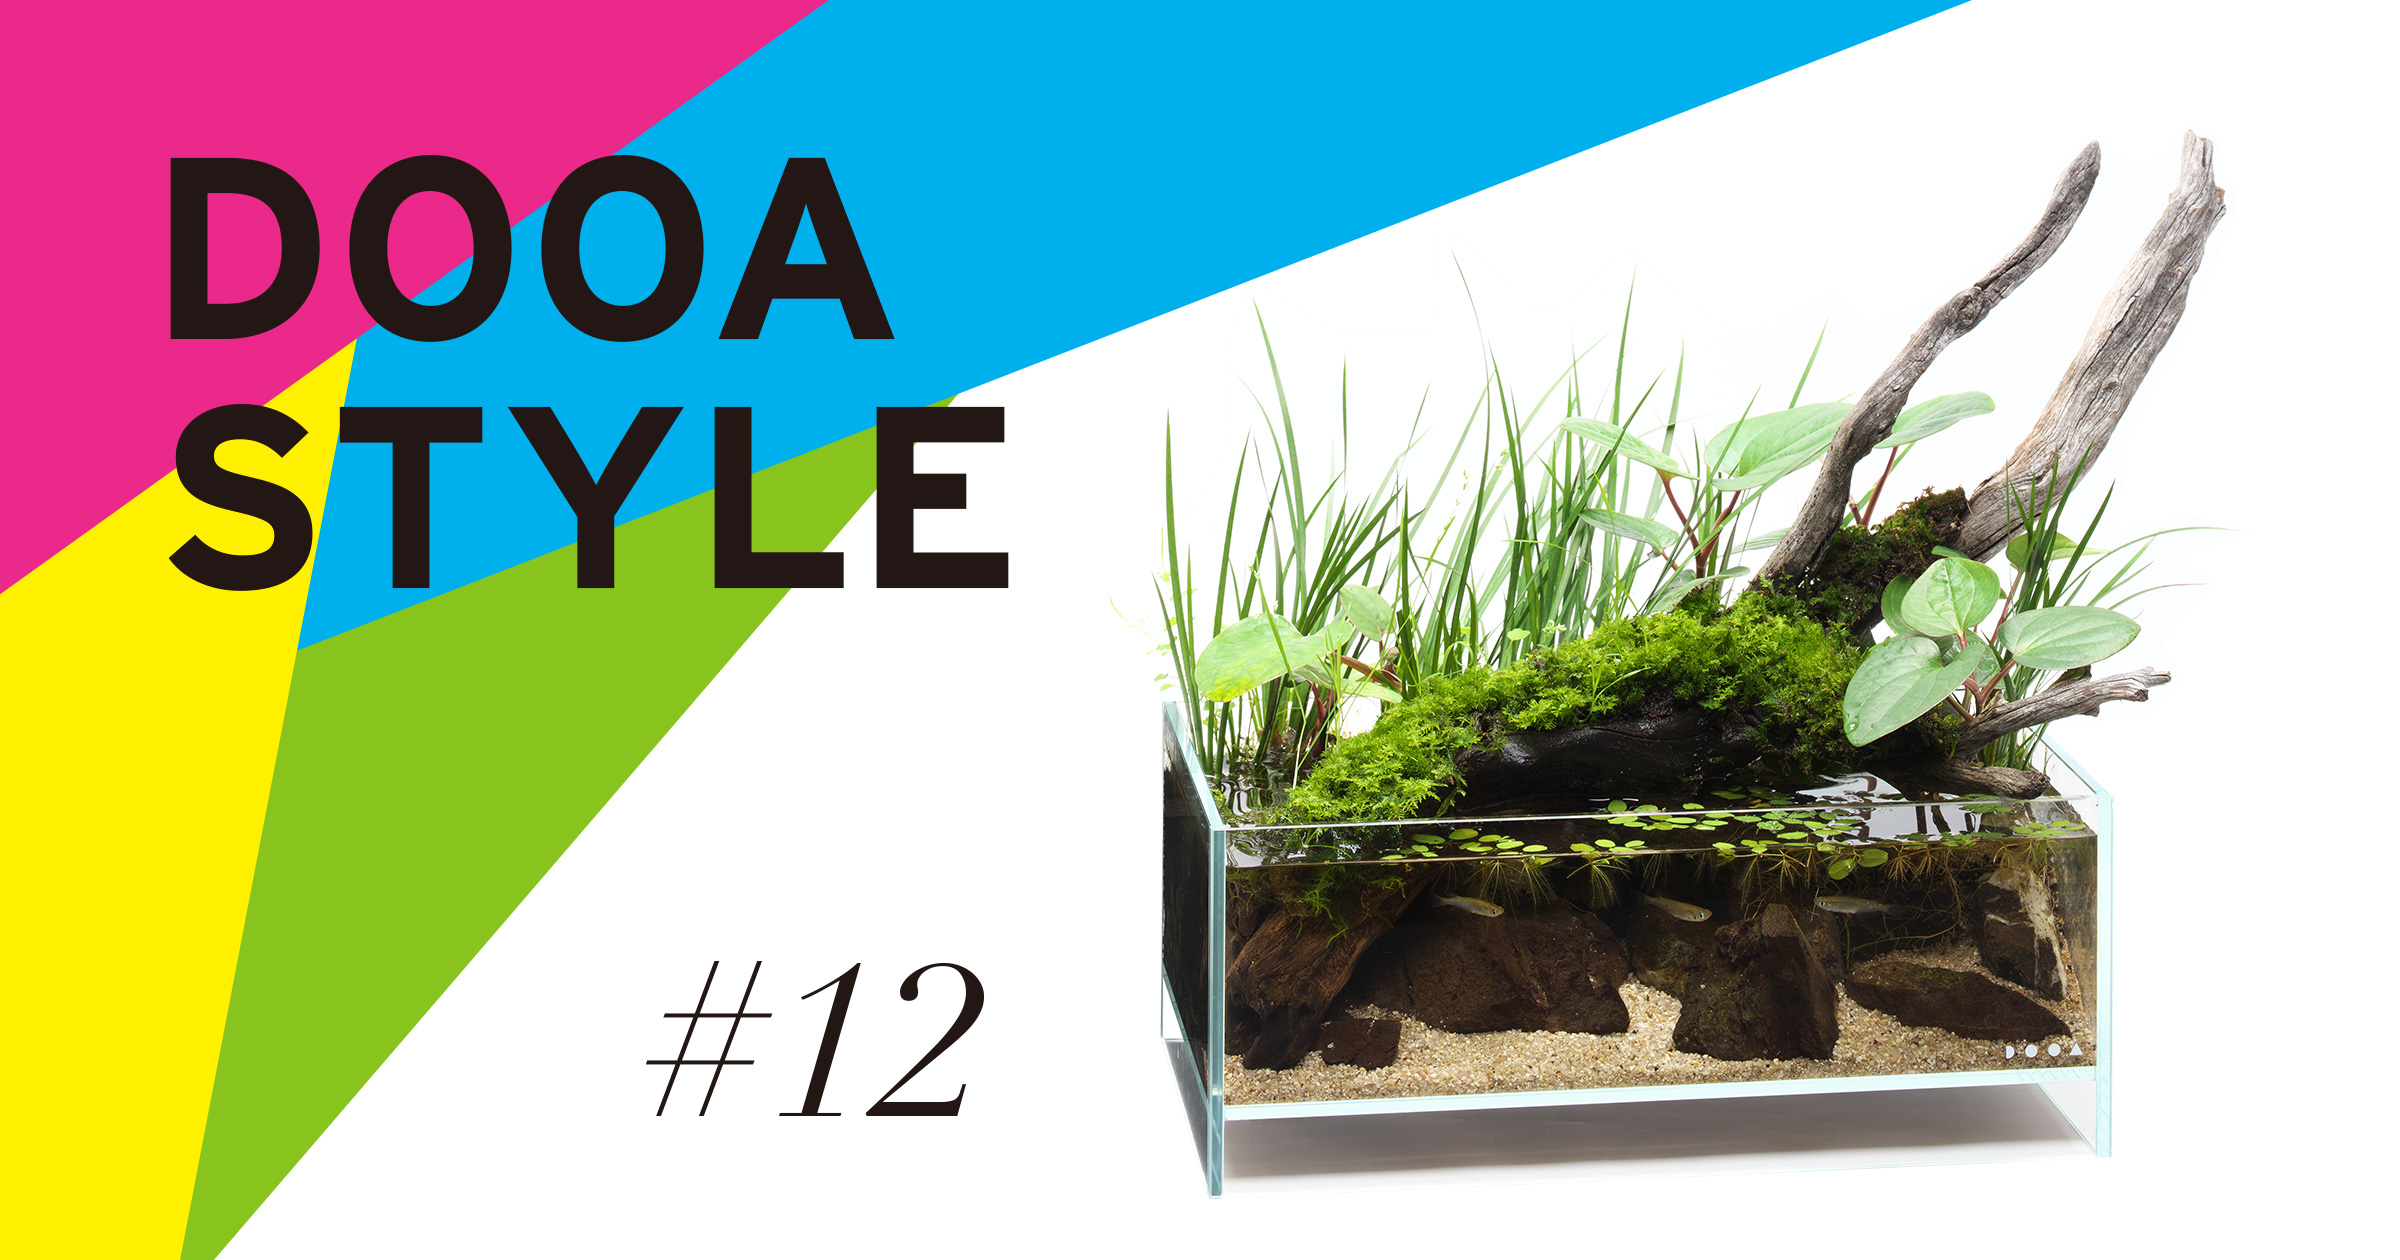 DOOA STYLE #12  Original scenery in early summer that cuddles up to driftwood